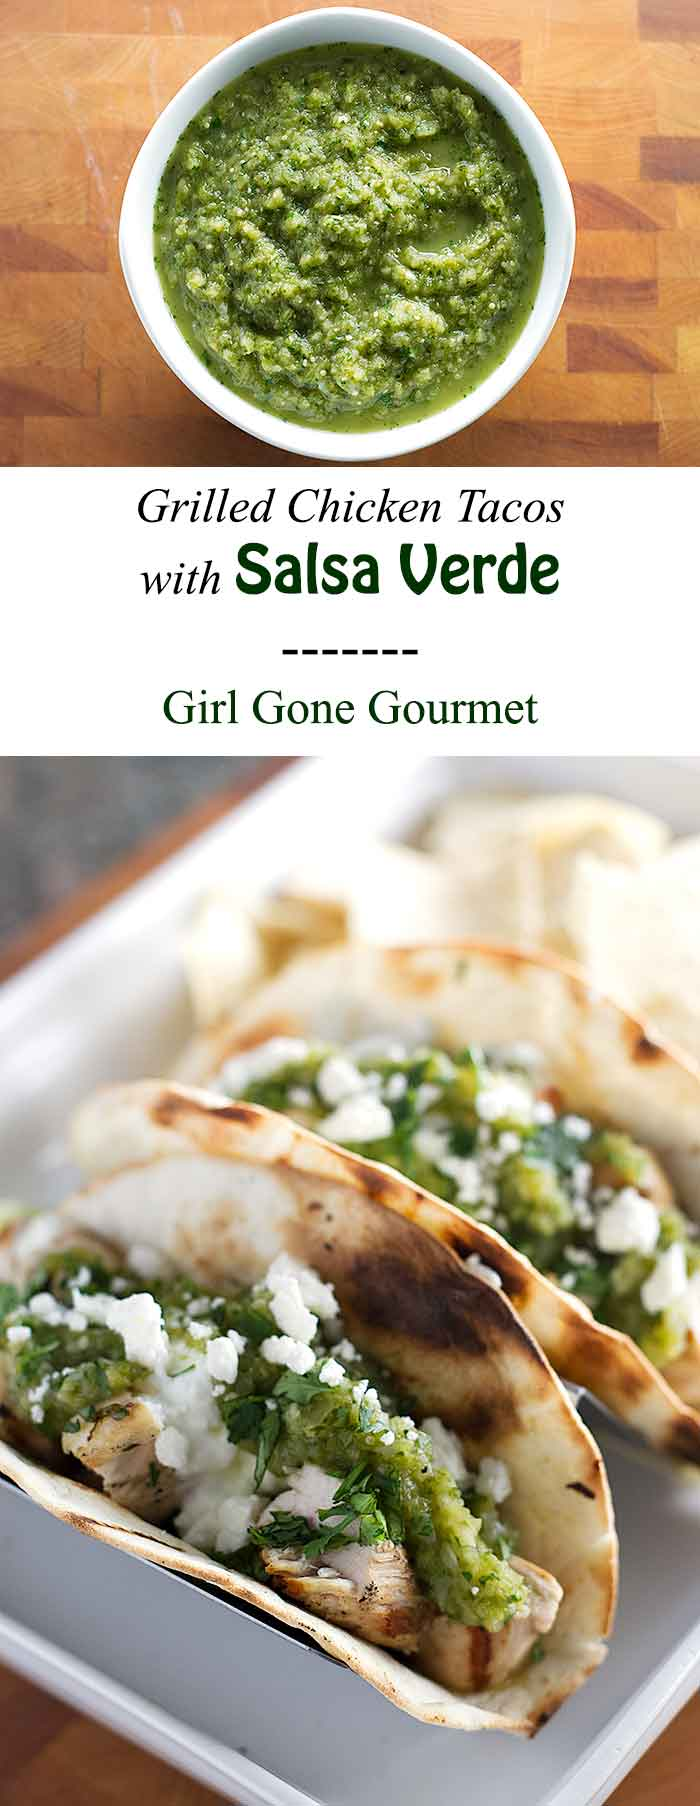 Get the recipe for salsa verde - it's perfect on tacos! | girlgonegourmet.com